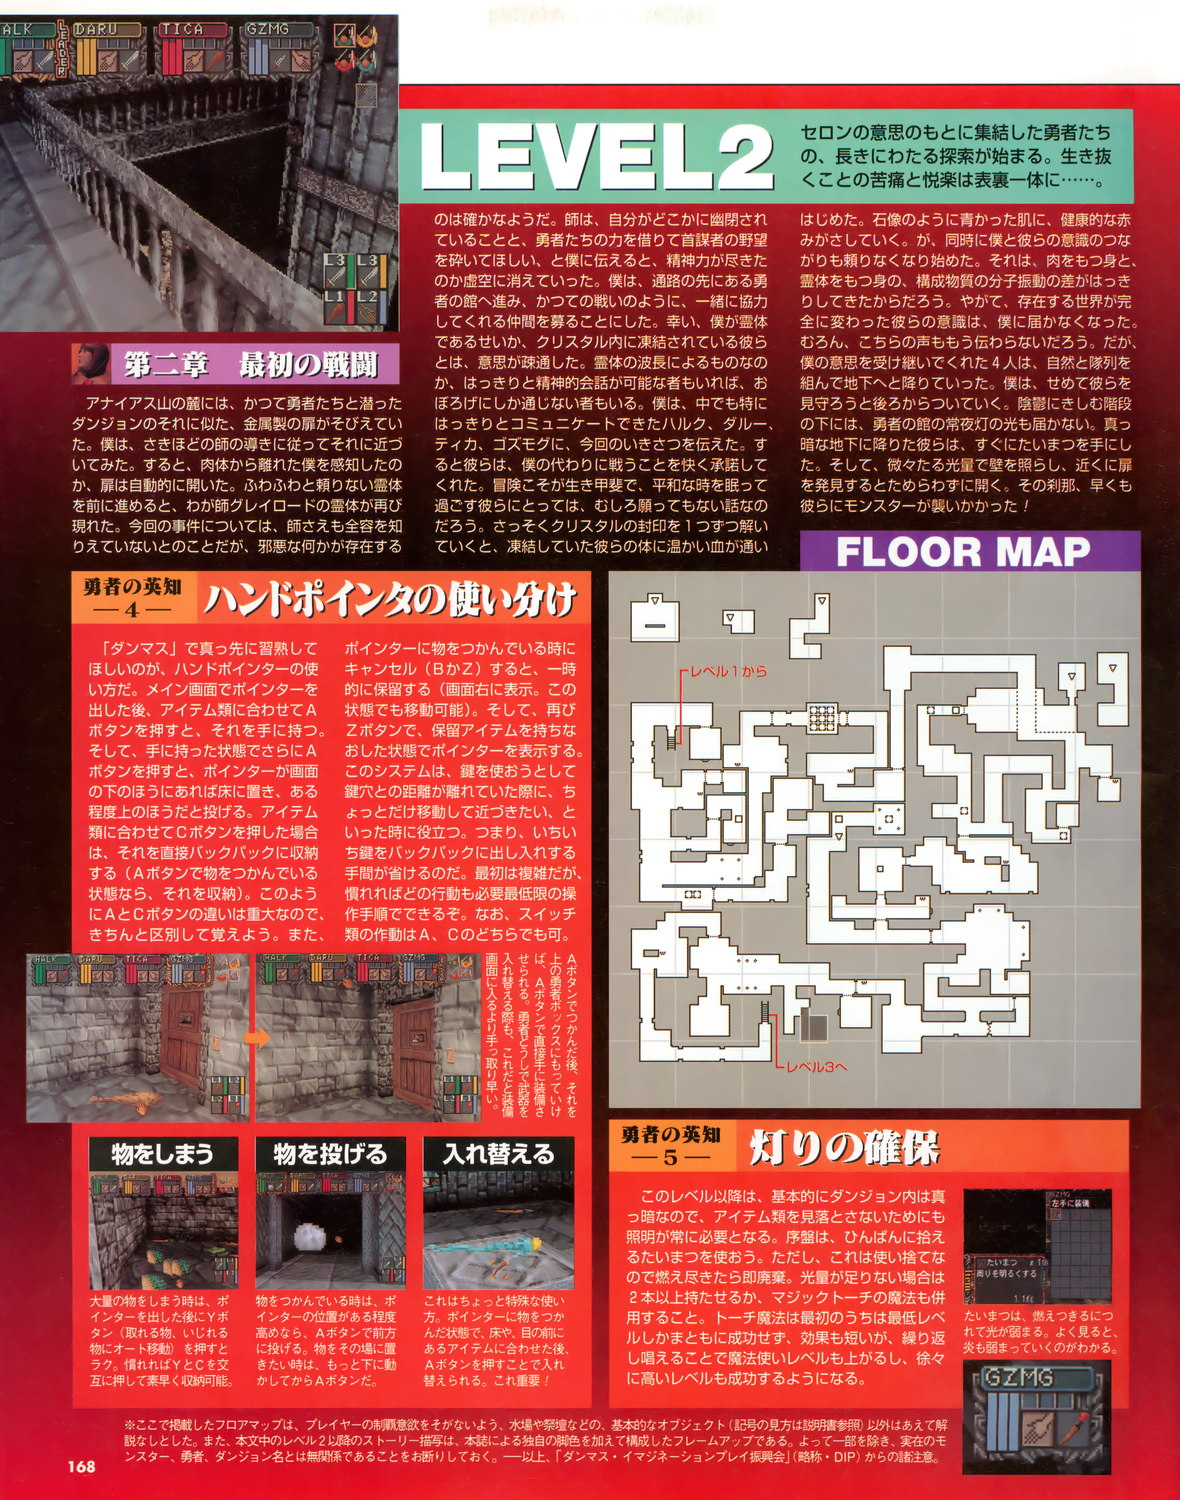 Dungeon Master Nexus Guide published in Japanese magazine 'Sega Saturn Magazine', Vol 11 10 April 1998, Page 168